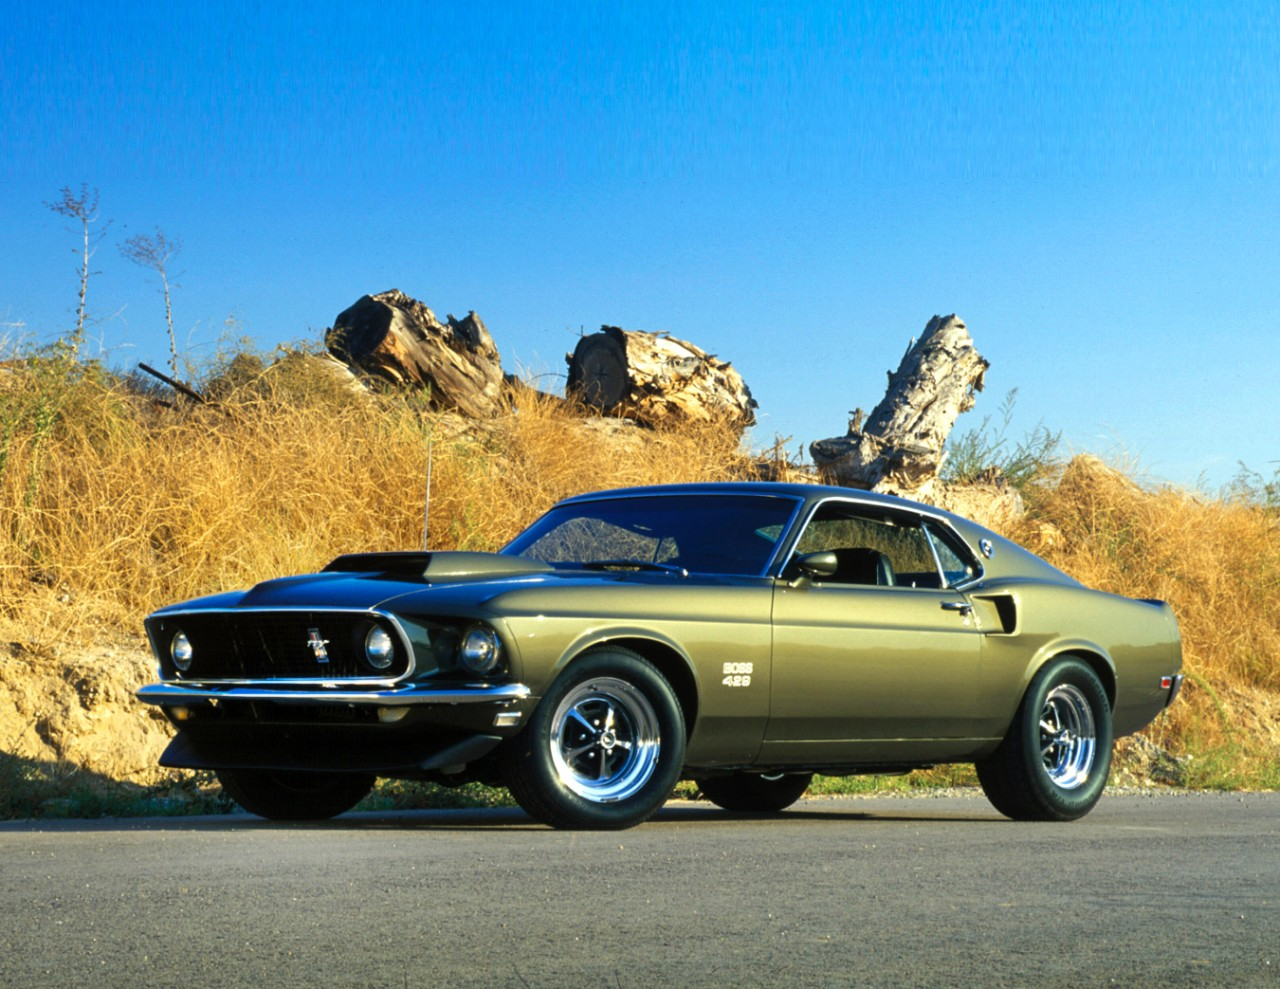 An olive green Ford Mustang Boss 429